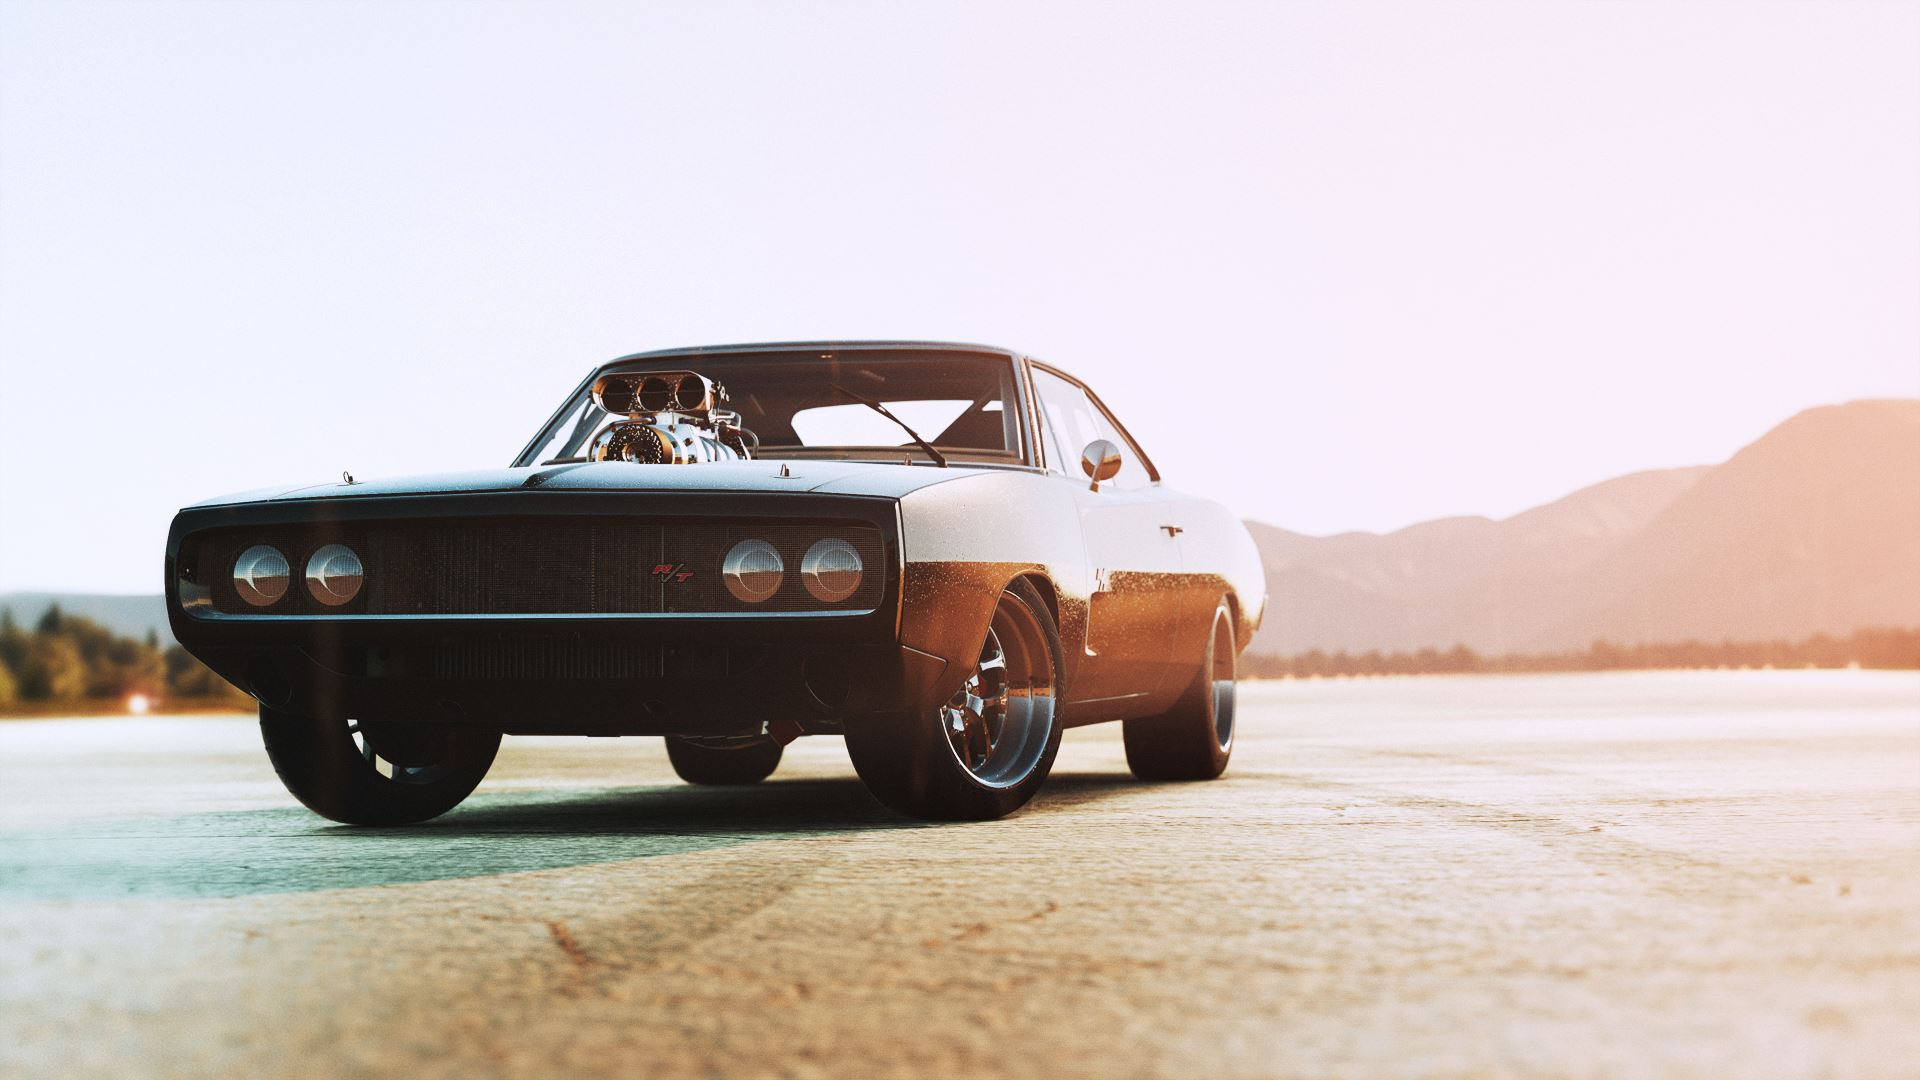 1970 Dodge Charger Rt Fast And Furious Edition Fond Décran Hd